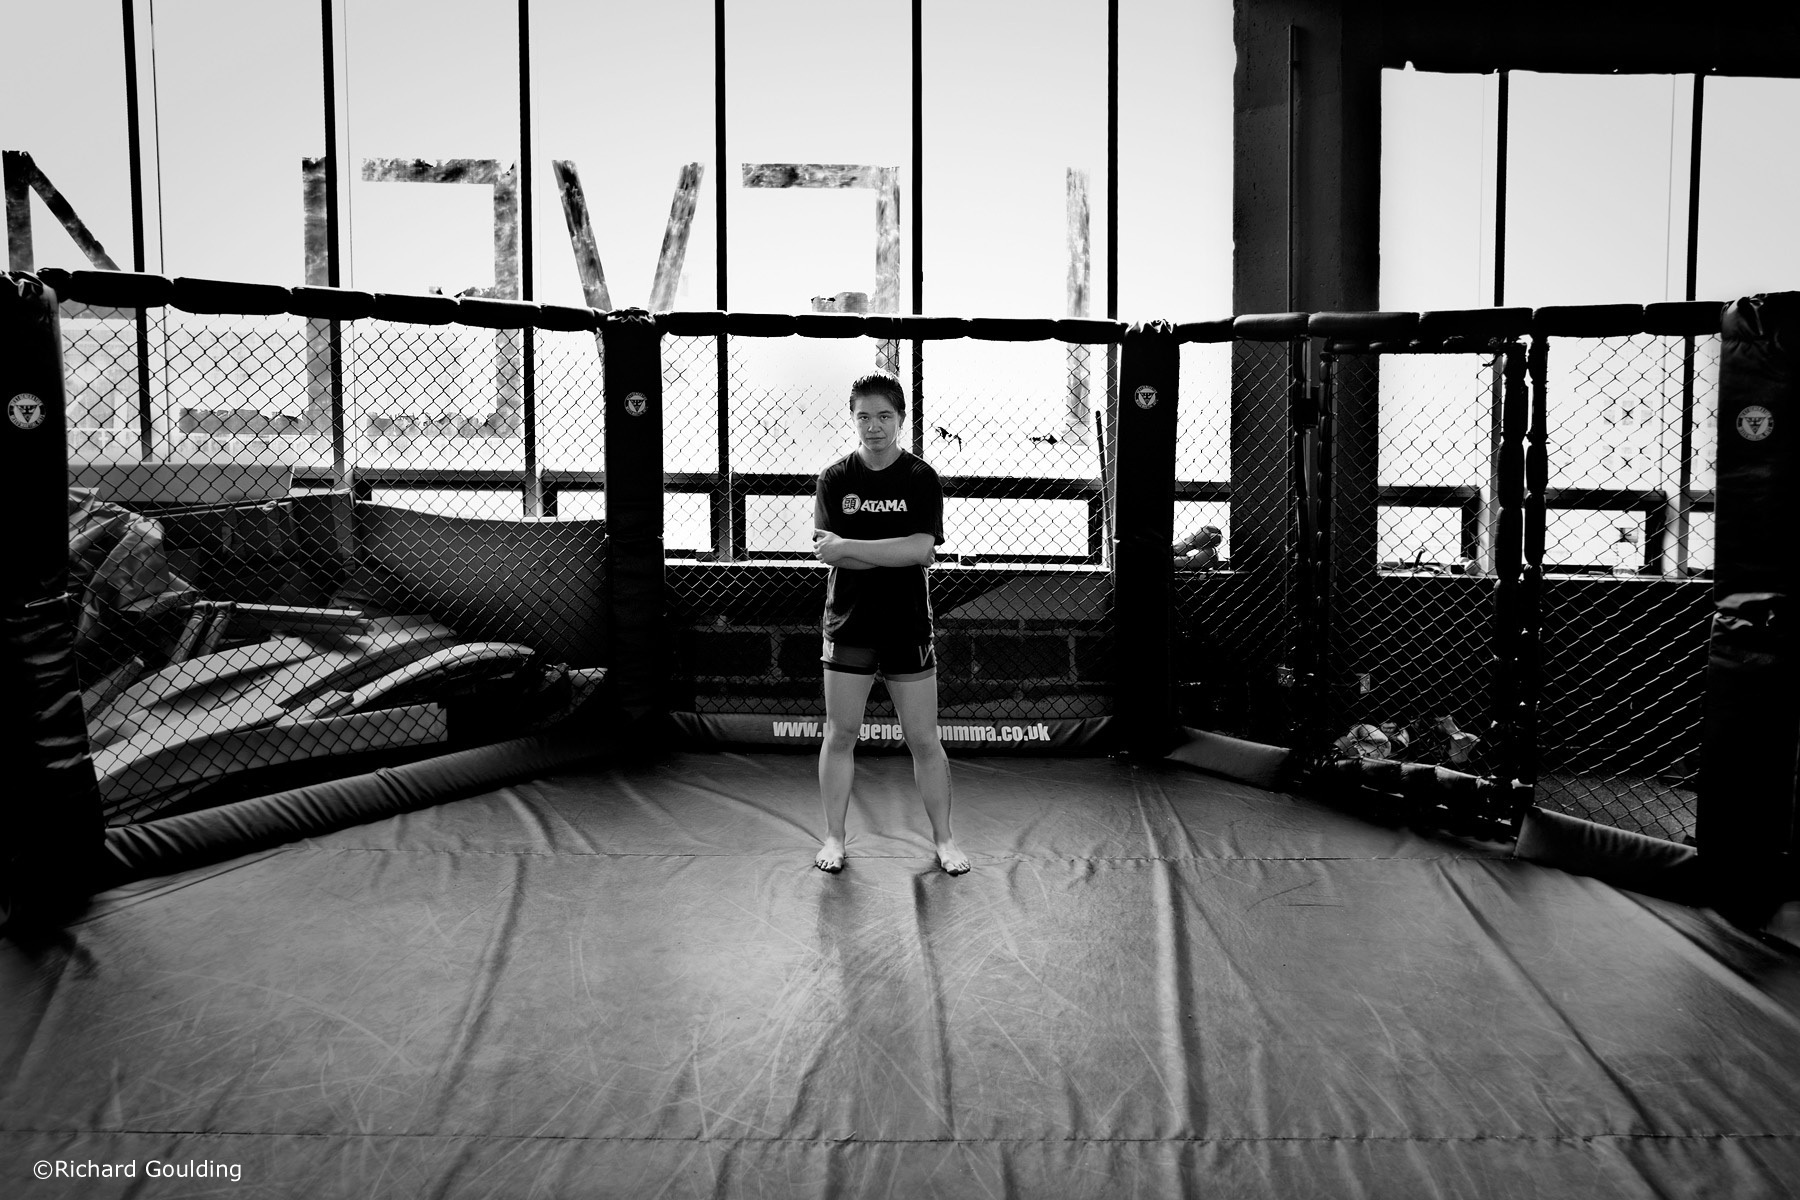 Rosi Sexton UFC MMA fighter; Liverpool 2013; ©Richard Goulding